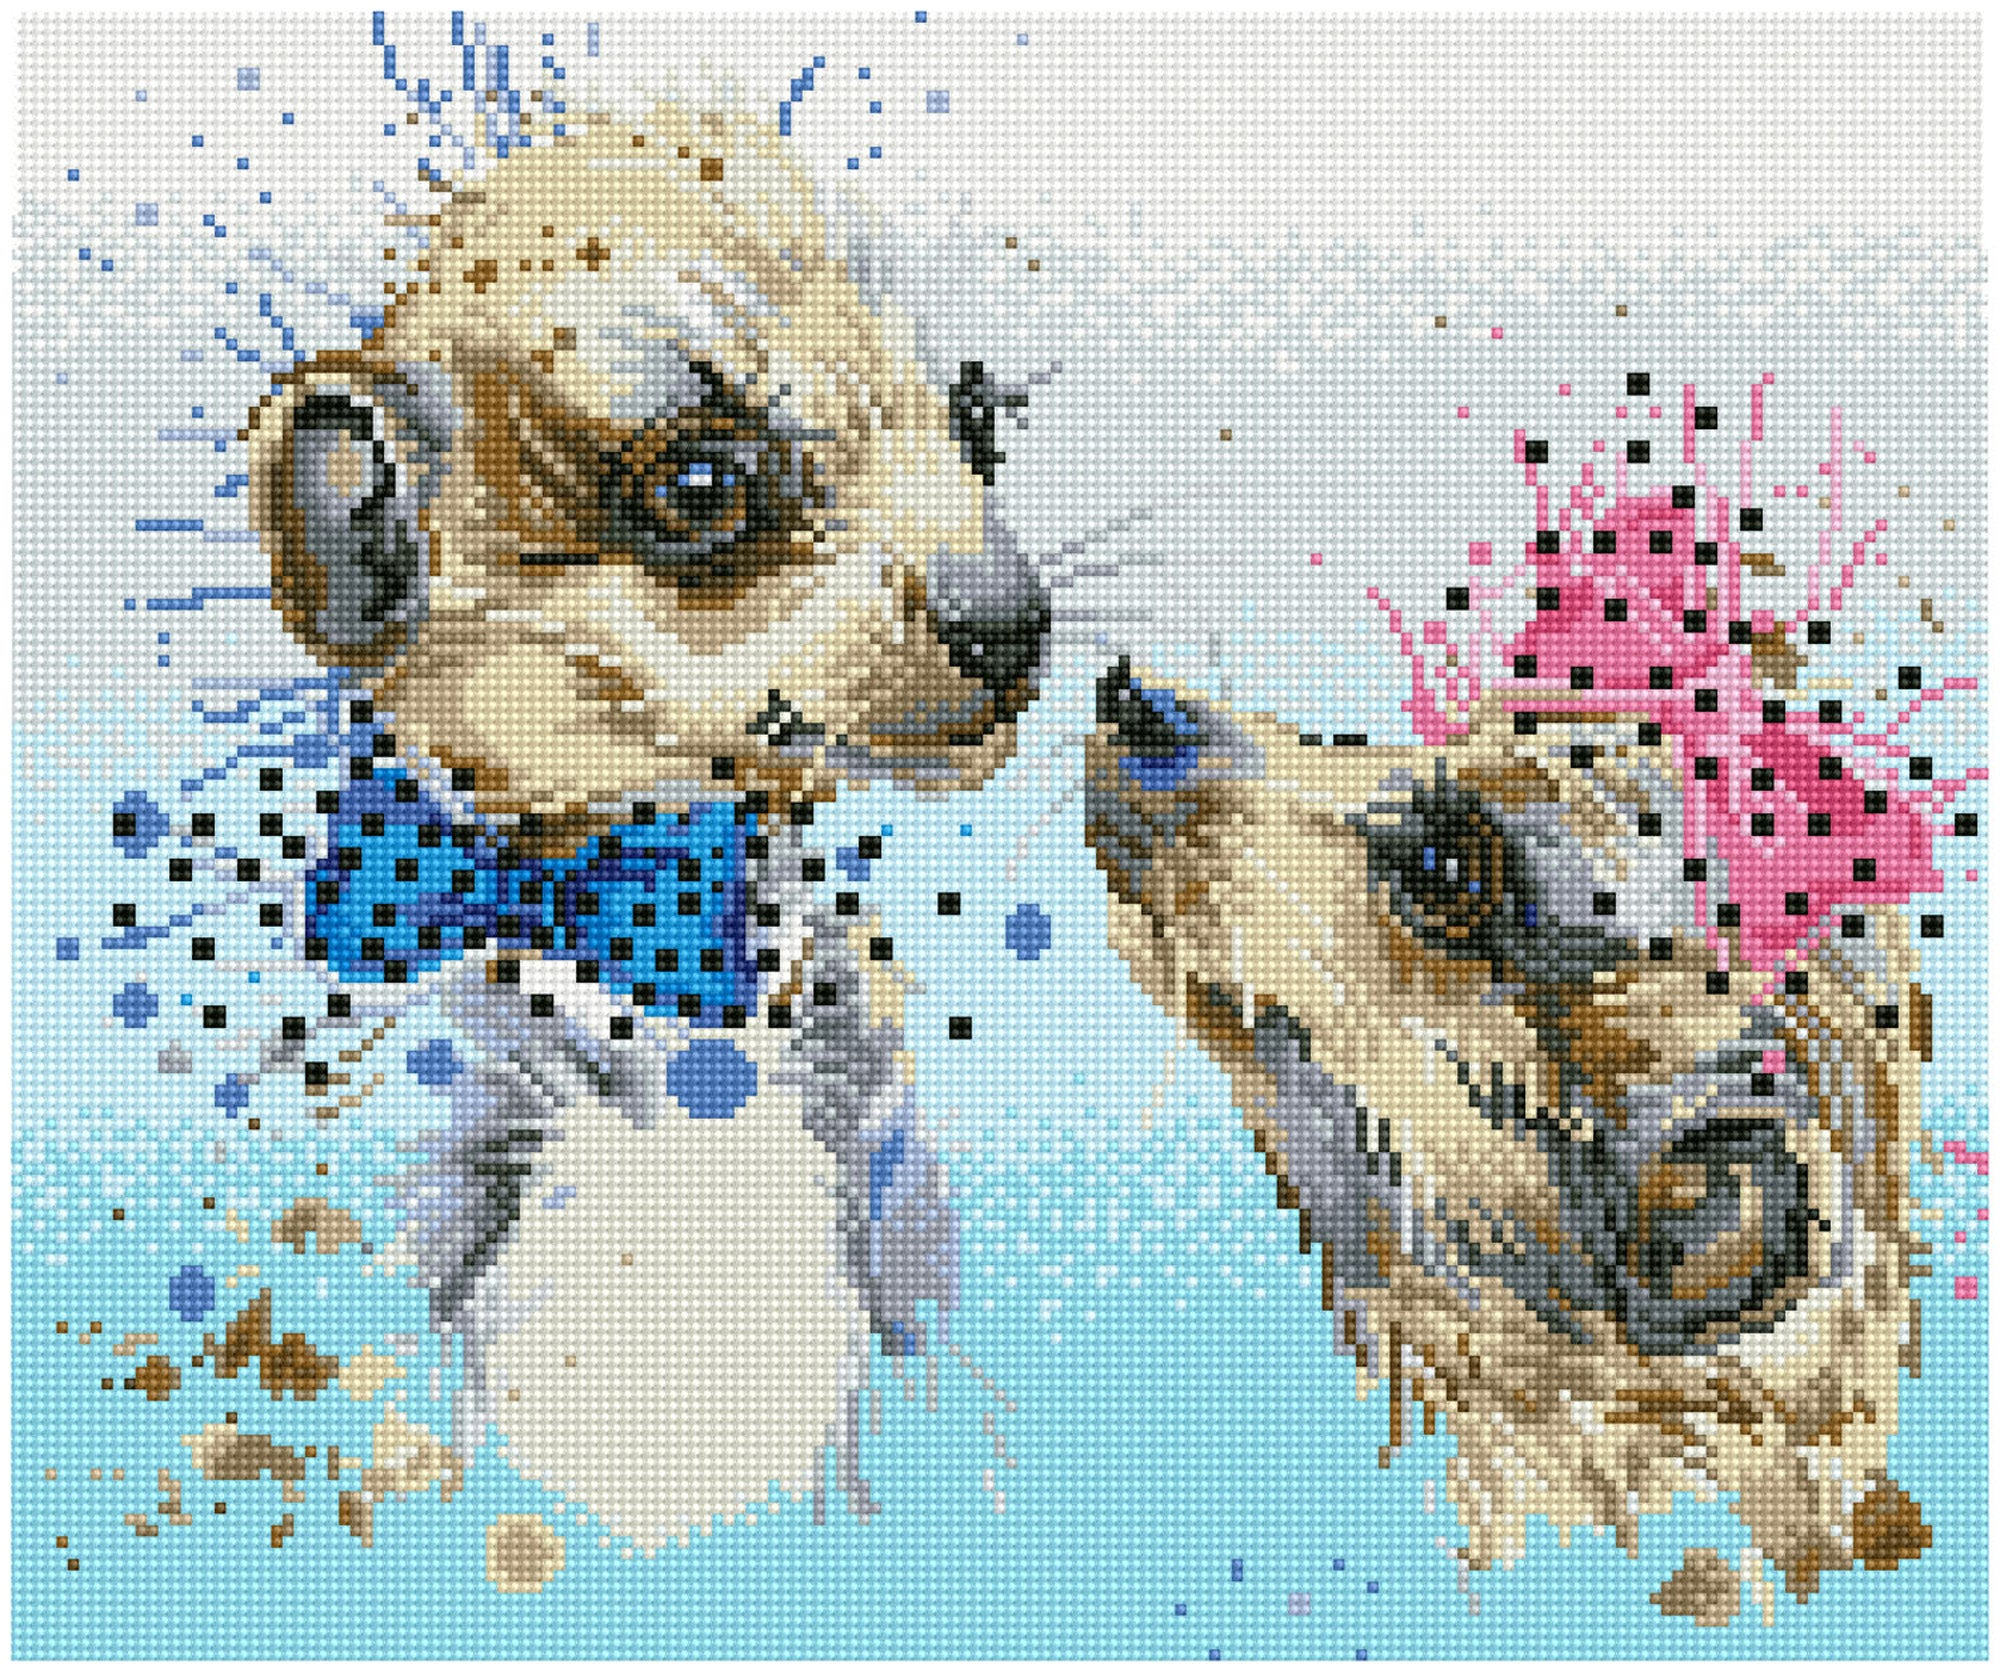 Meerkat liefde diamond painting